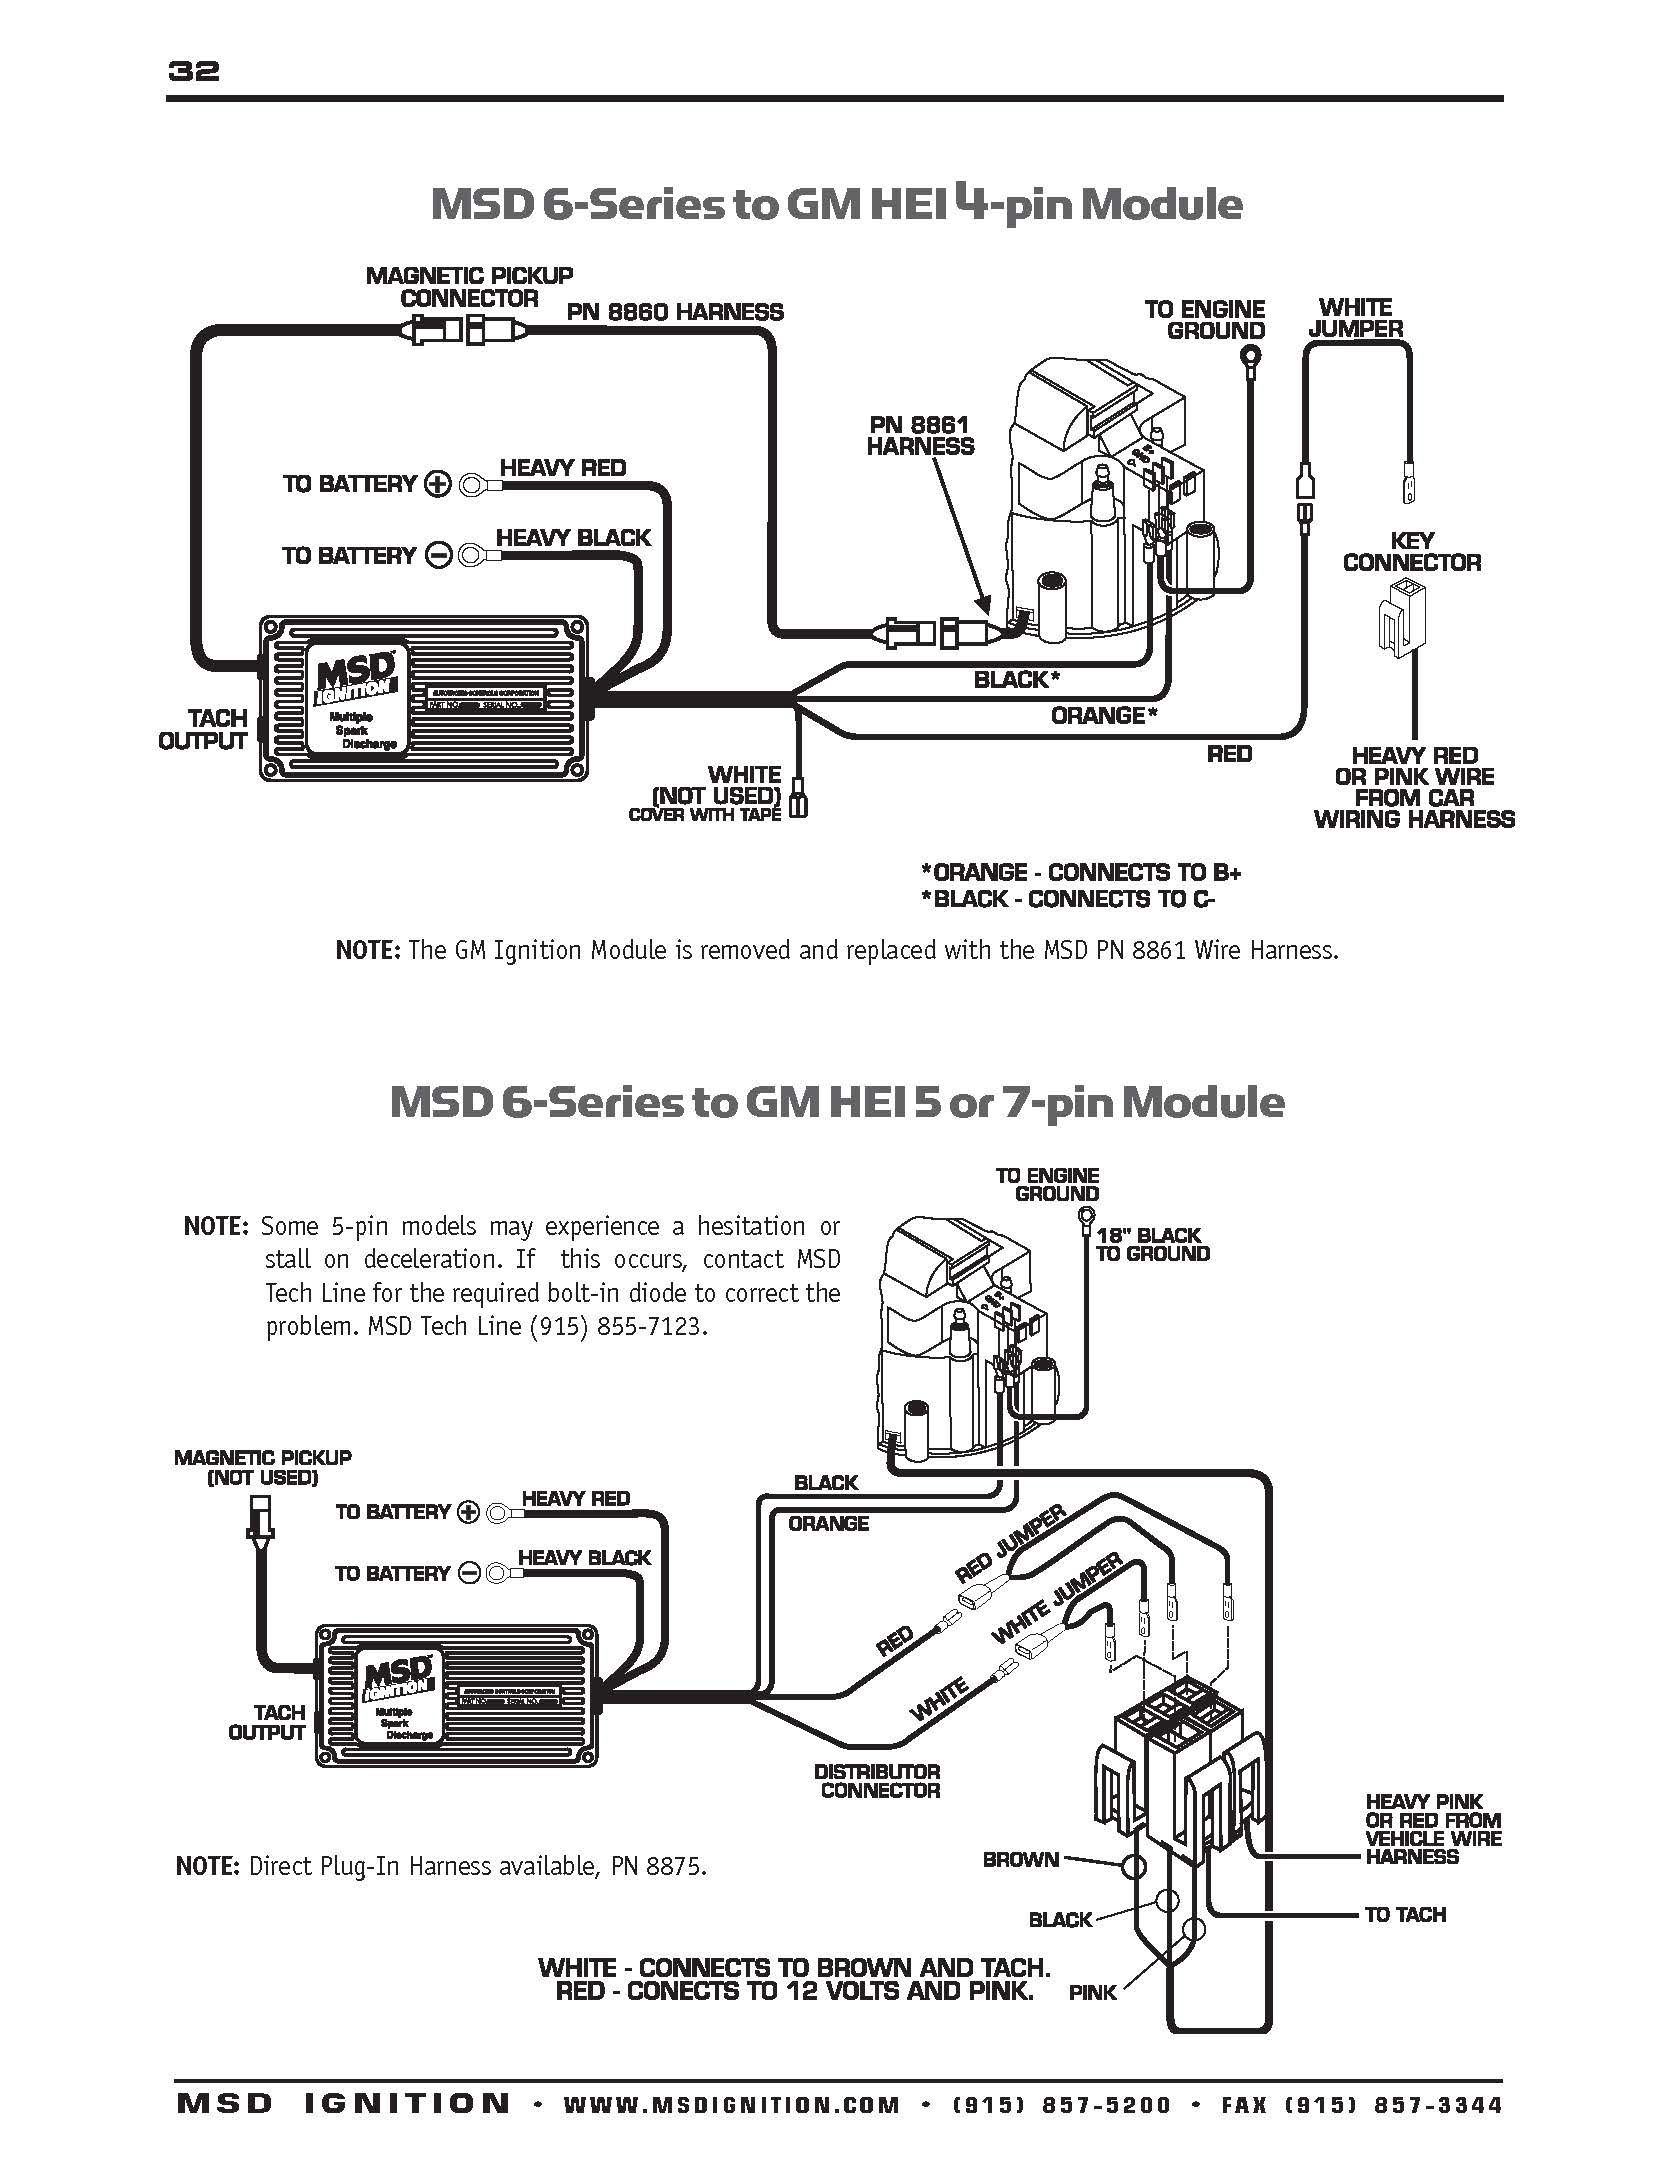 Msd Ignition Wiring Diagram Chevy | Manual E-Books - Msd Ignition Wiring Diagram Chevy